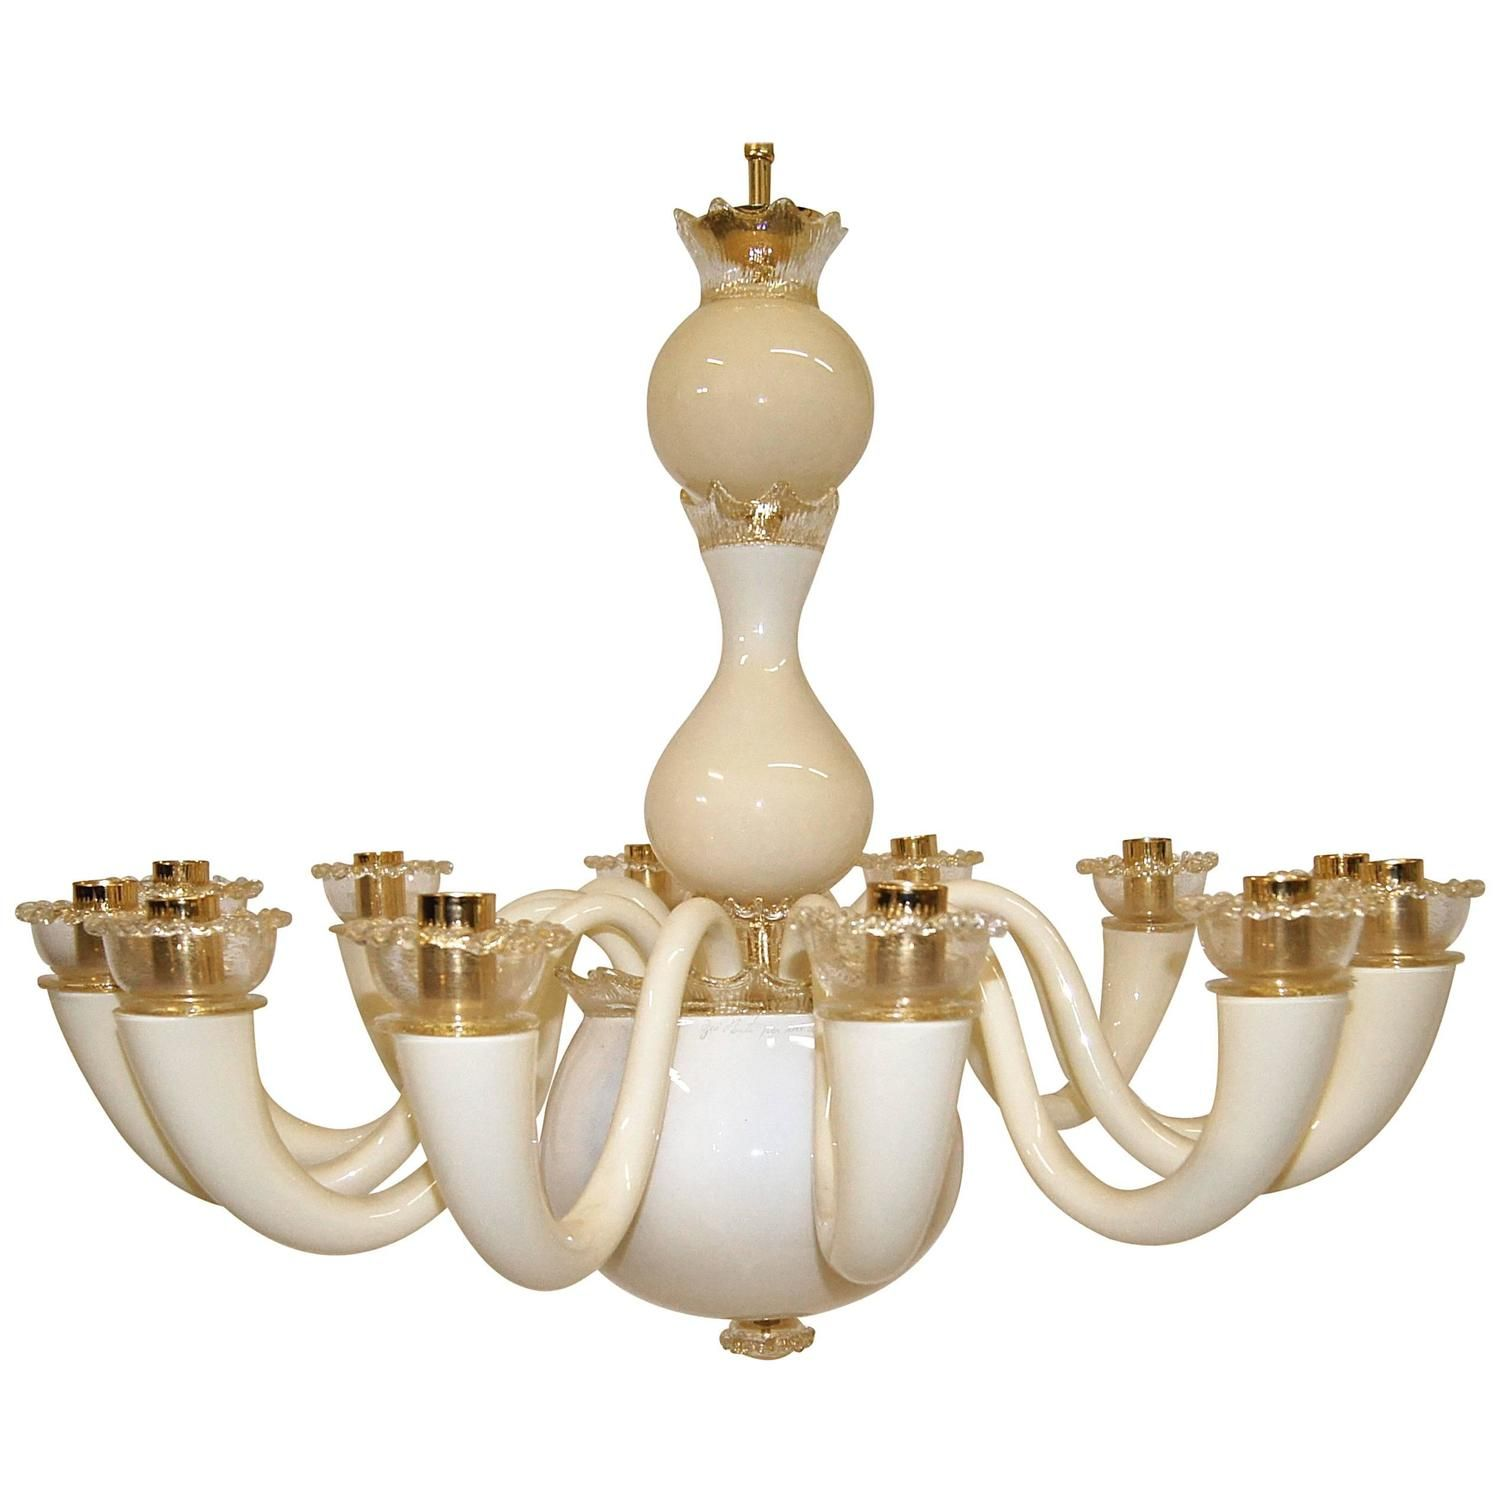 Gio ponti 12 arm ivory and gold plated chandelier chandeliers gio ponti 12 arm ivory and gold plated chandelier aloadofball Image collections